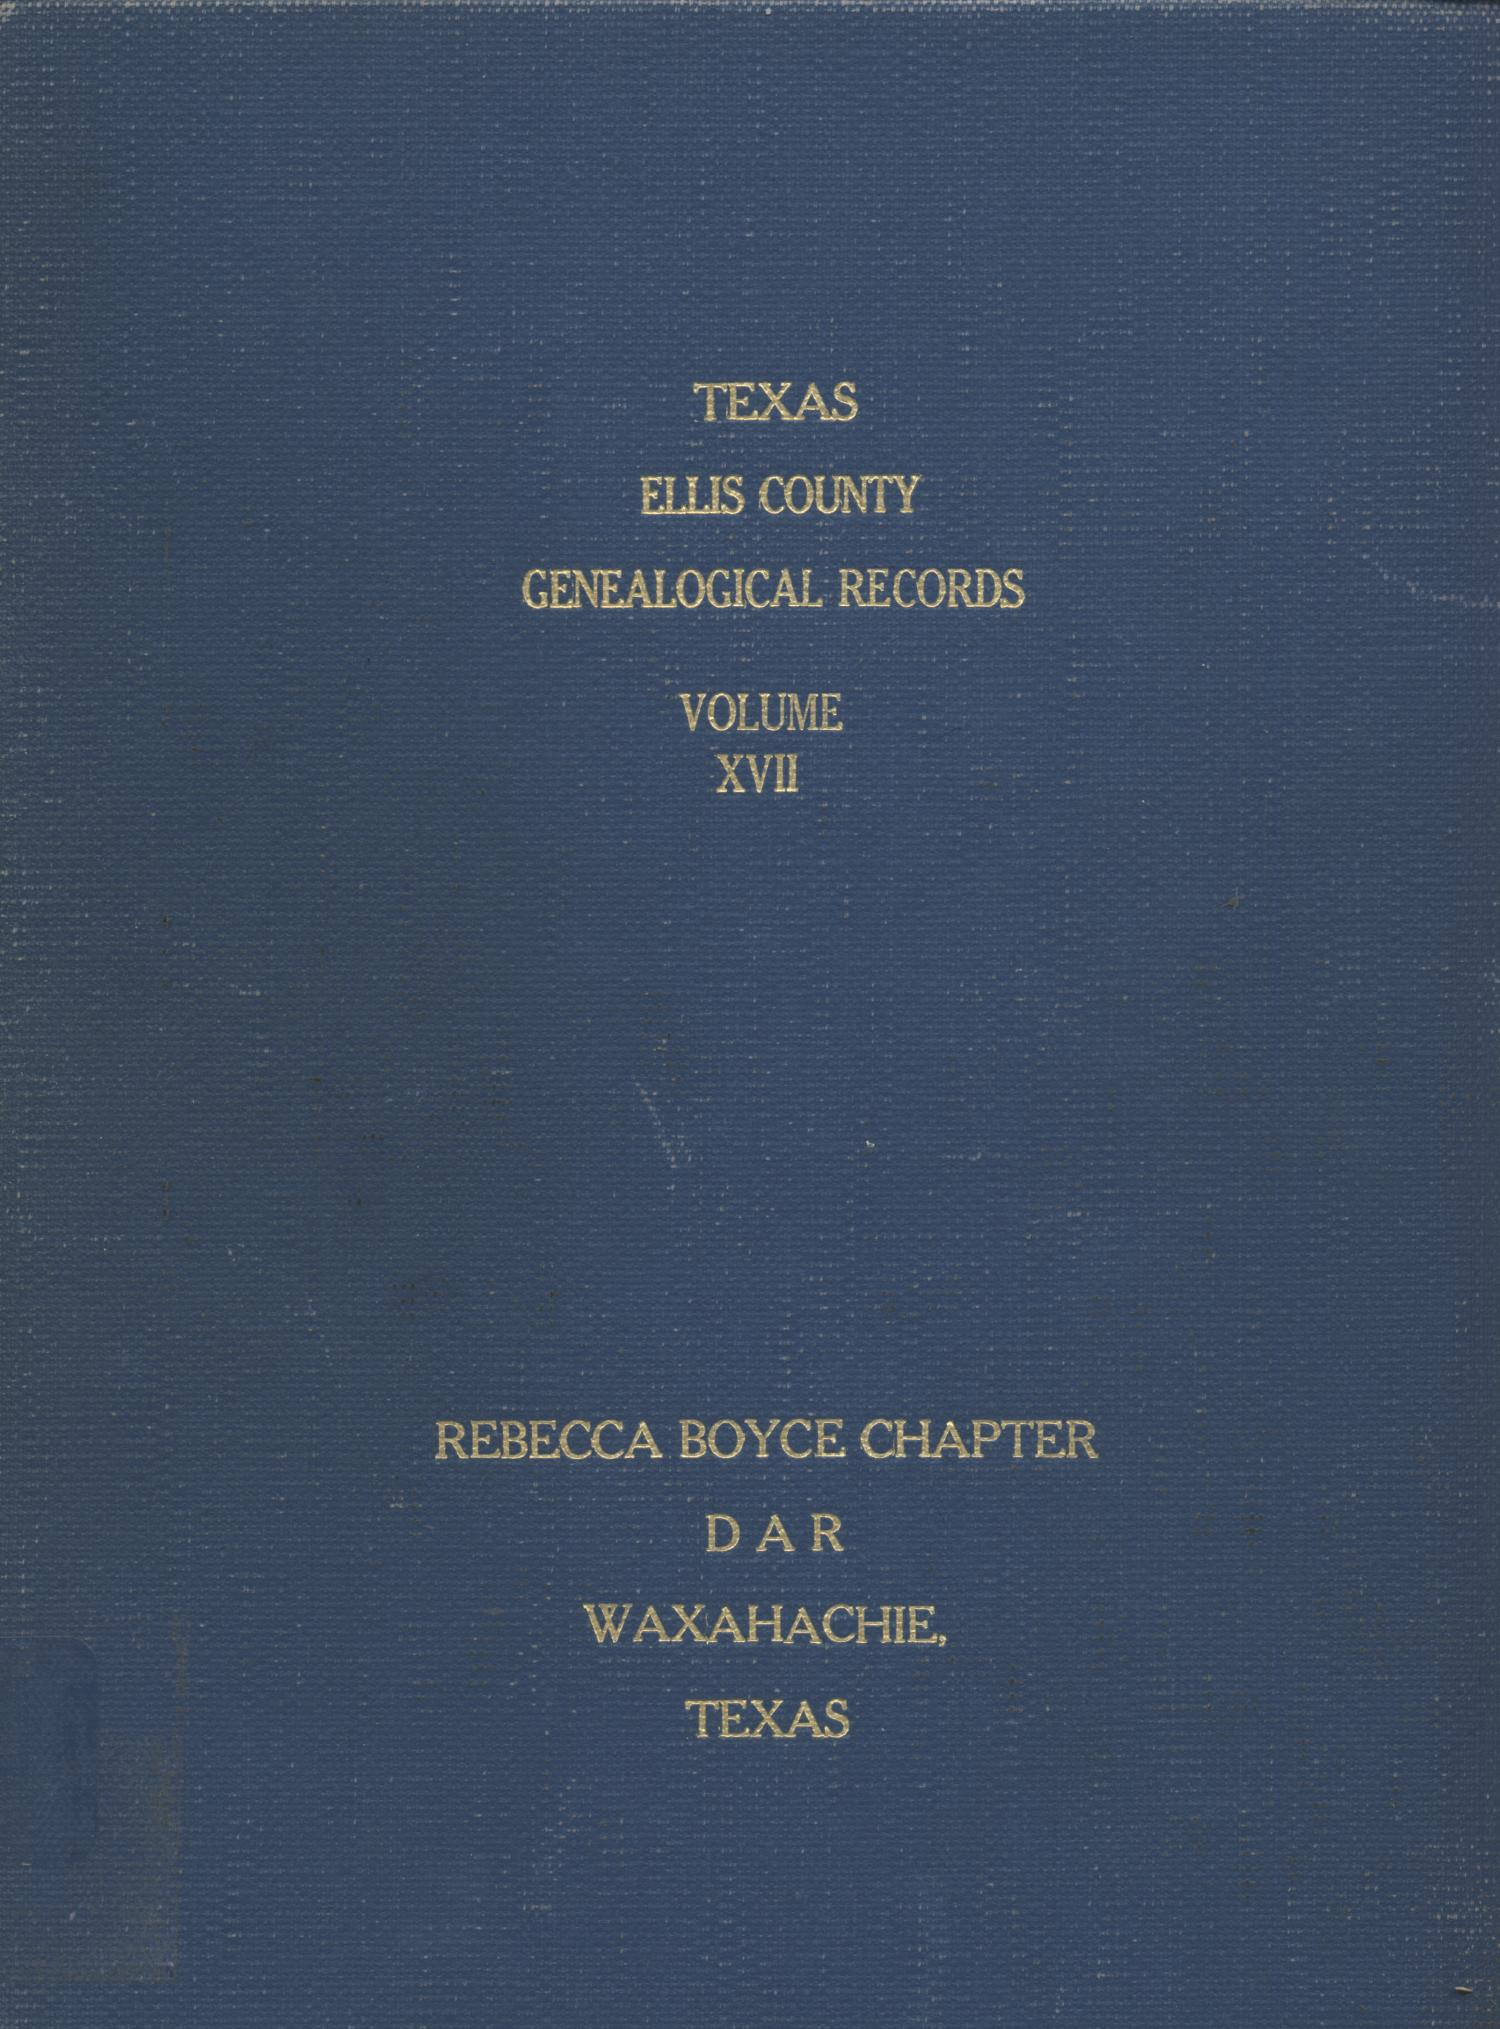 Texas Genealogical Records, Ellis County, Volume 17, 1800-1963                                                                                                      Front Cover